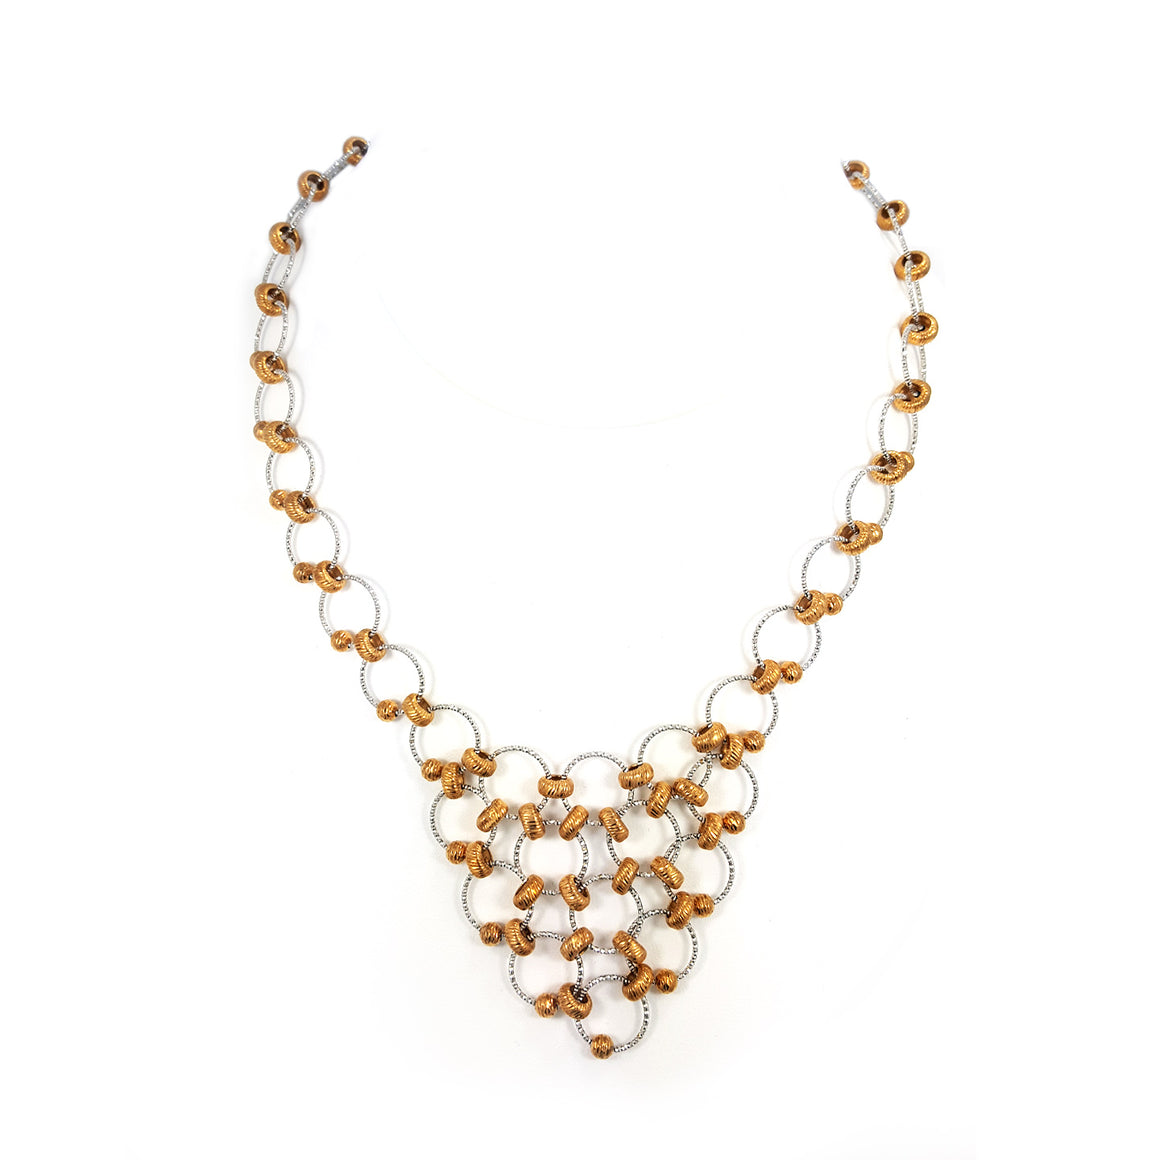 Silver necklace with gold overlay beads